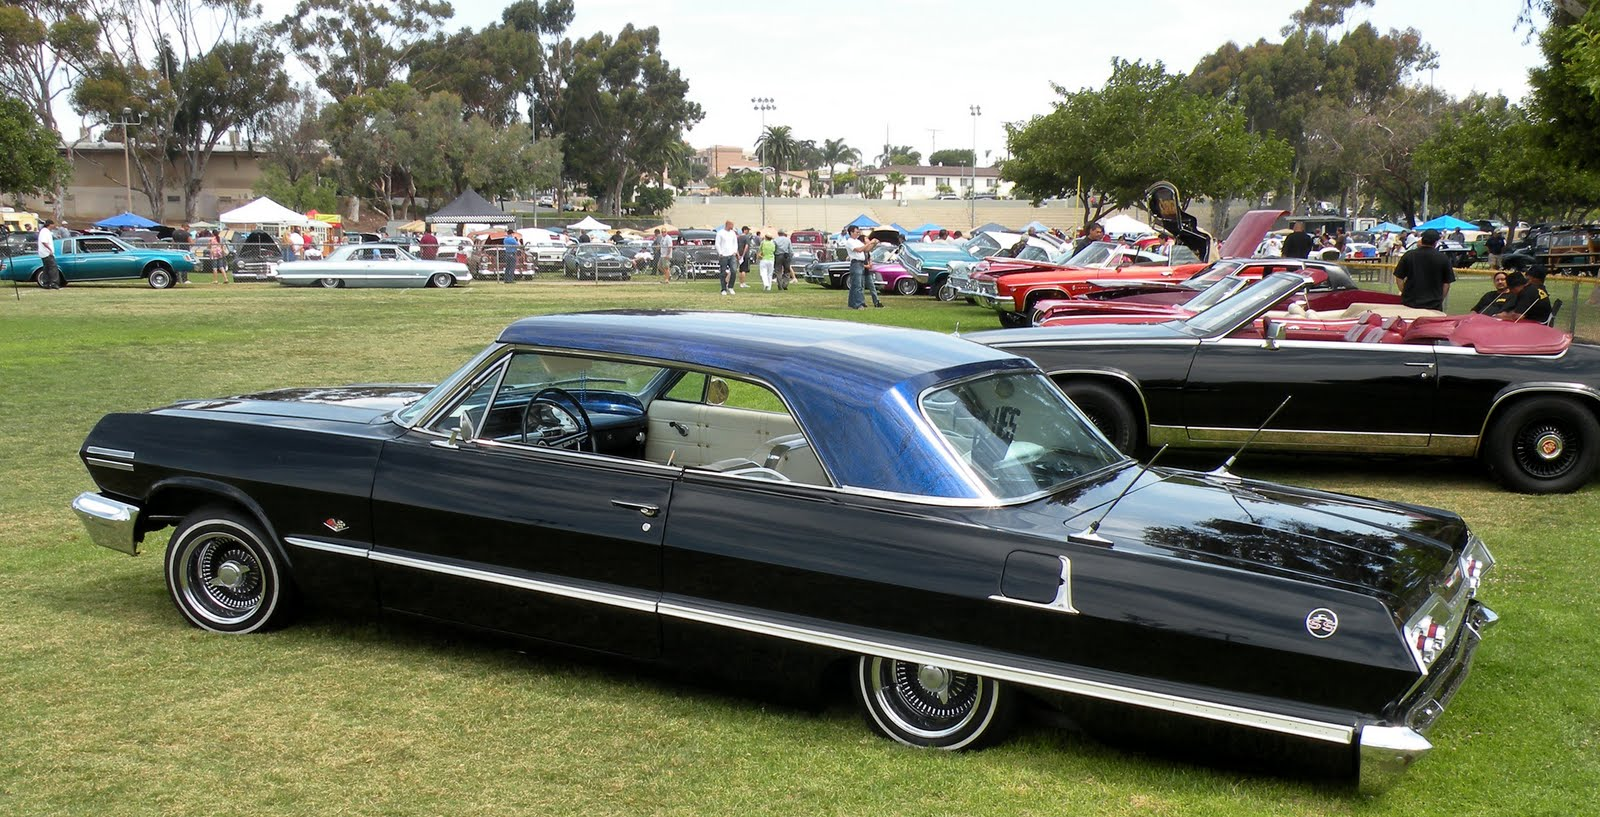 Kimball Park National City Car Show